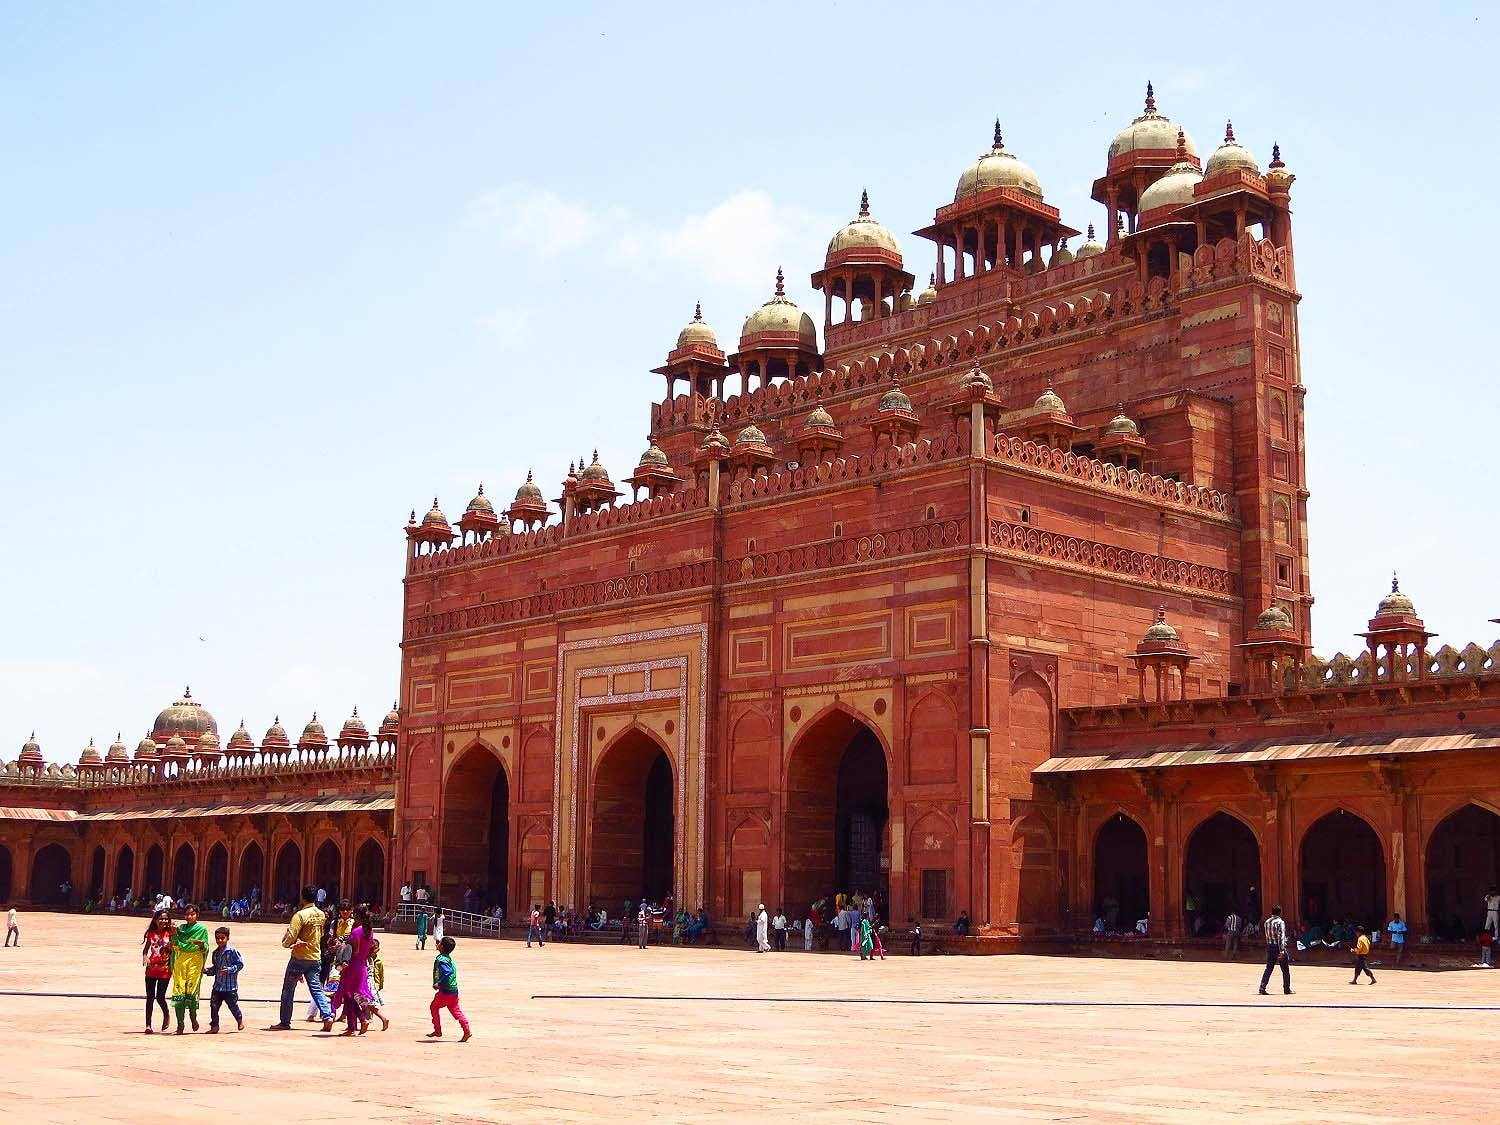 Kings Palace, Fatehpur Sikri.